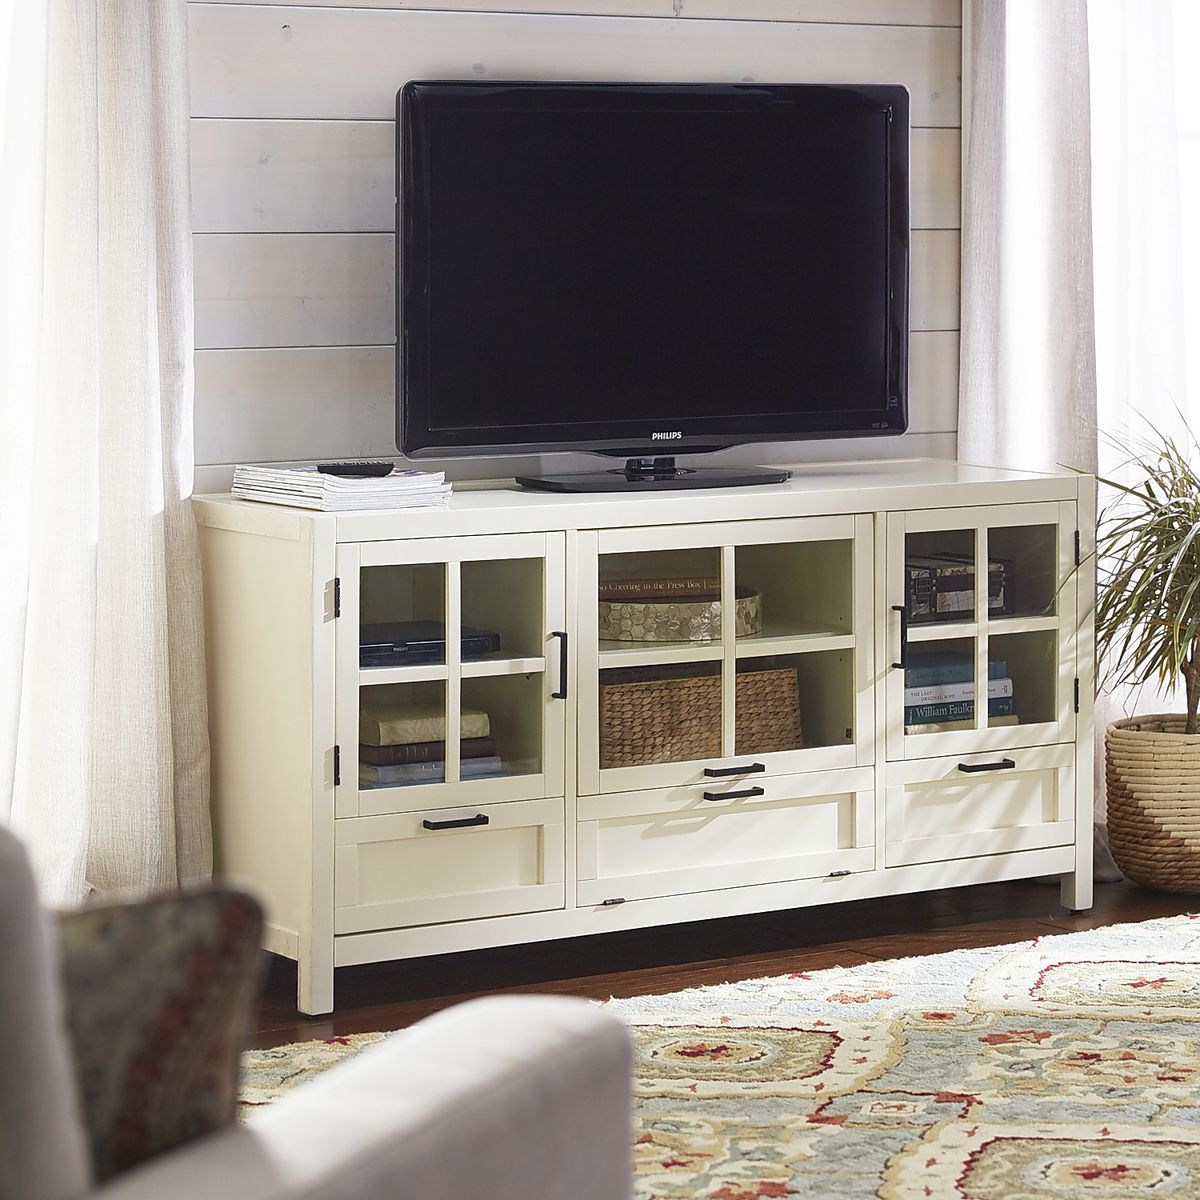 Sausalito Large TV Stand - Antique White | Pier 1 Imports - Sausalito Large TV Stand - Antique White Pier 1 Imports TV